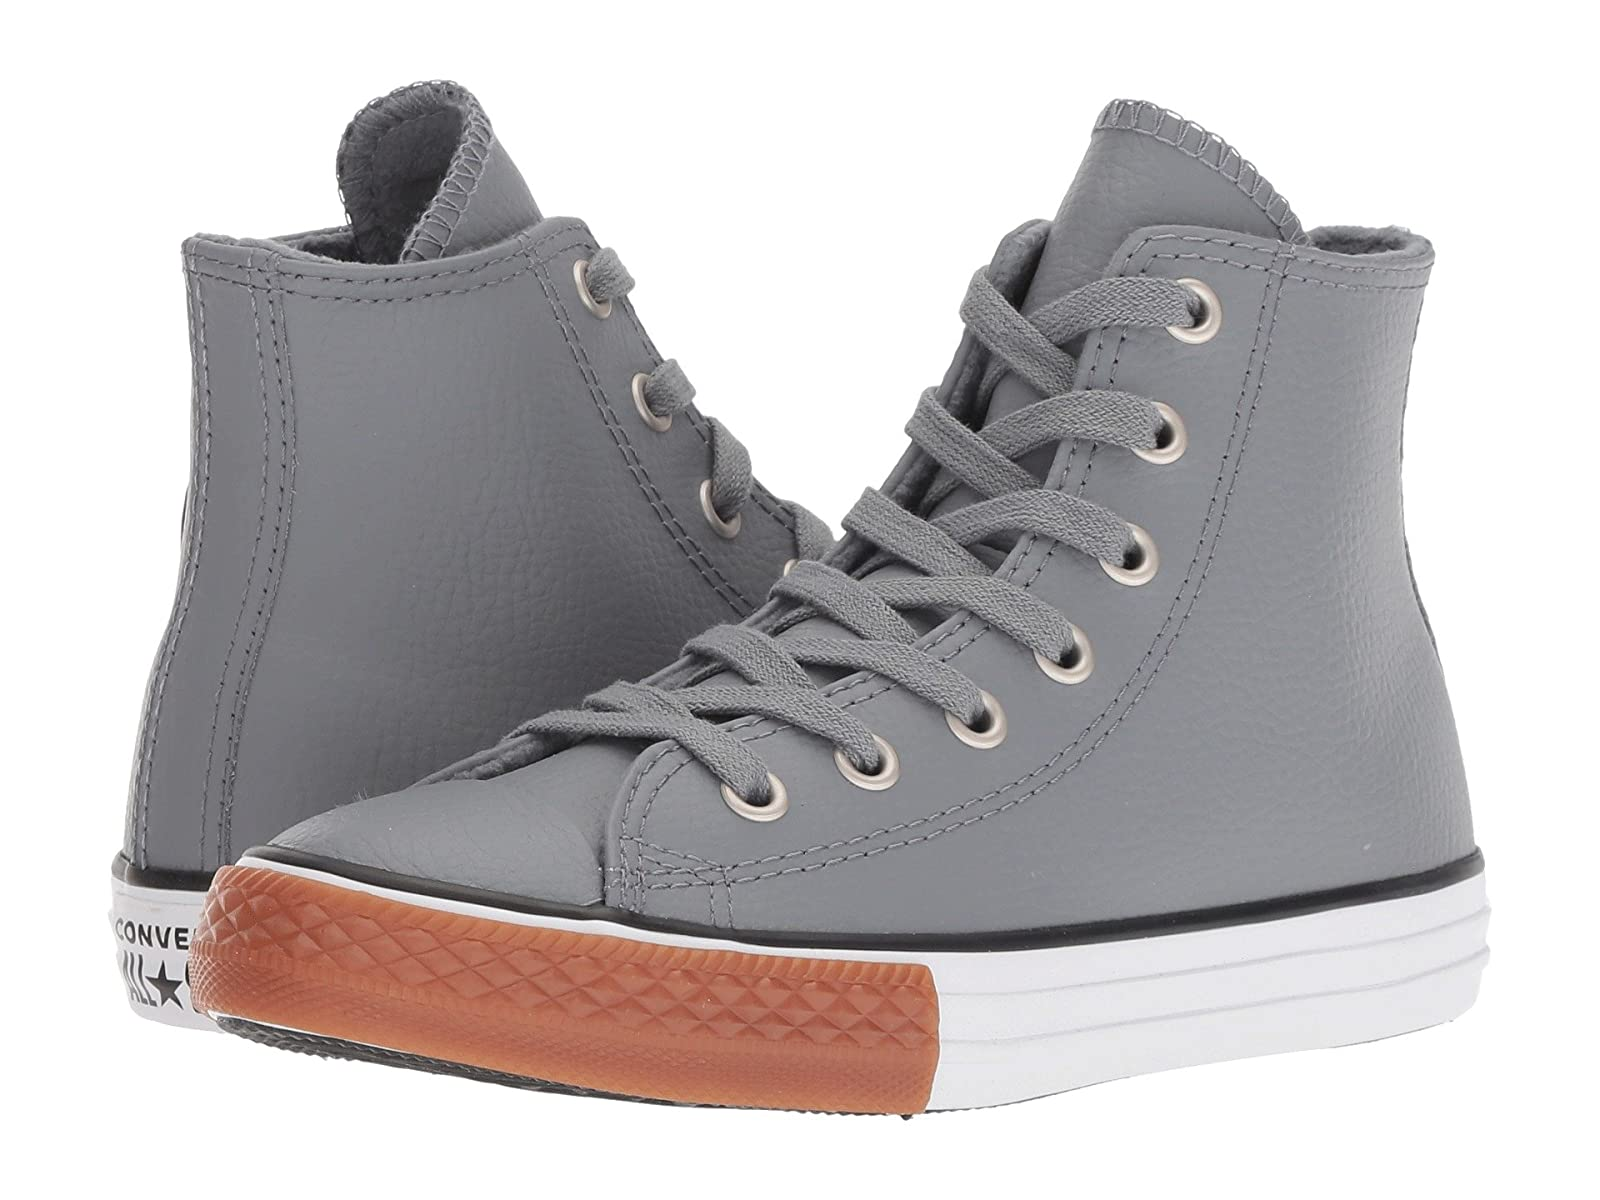 Converse Kids Chuck Taylor® All Star® Leather - Hi (Little Kid/Big Kid)Atmospheric grades have affordable shoes